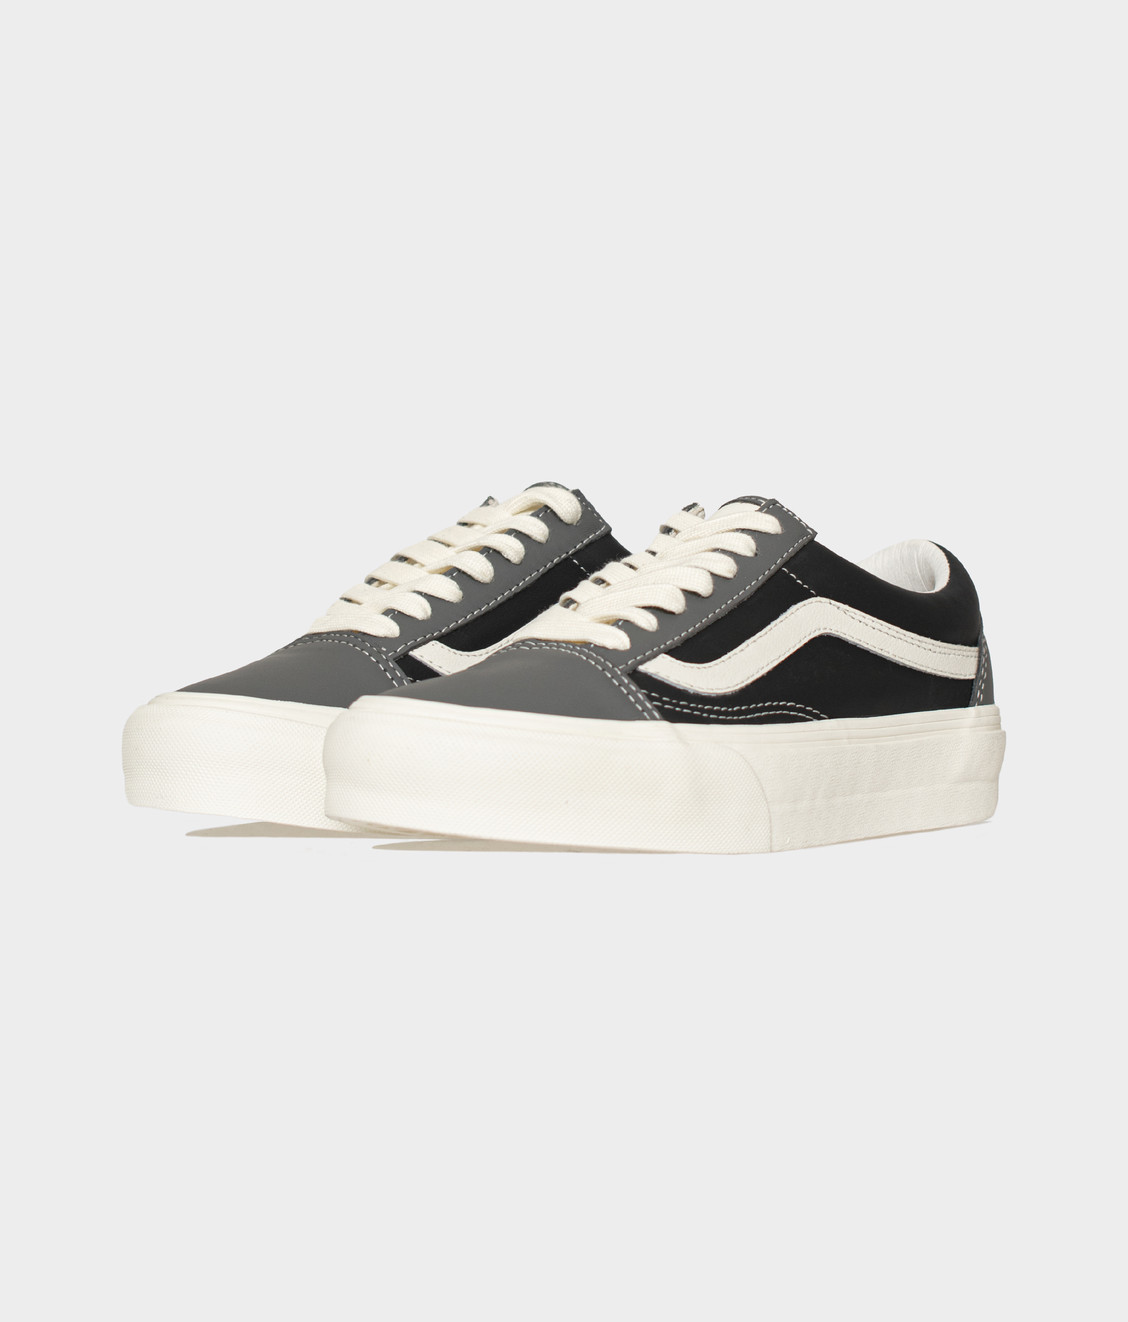 Vans Vans UA Old Skool VLT LX Charcoal